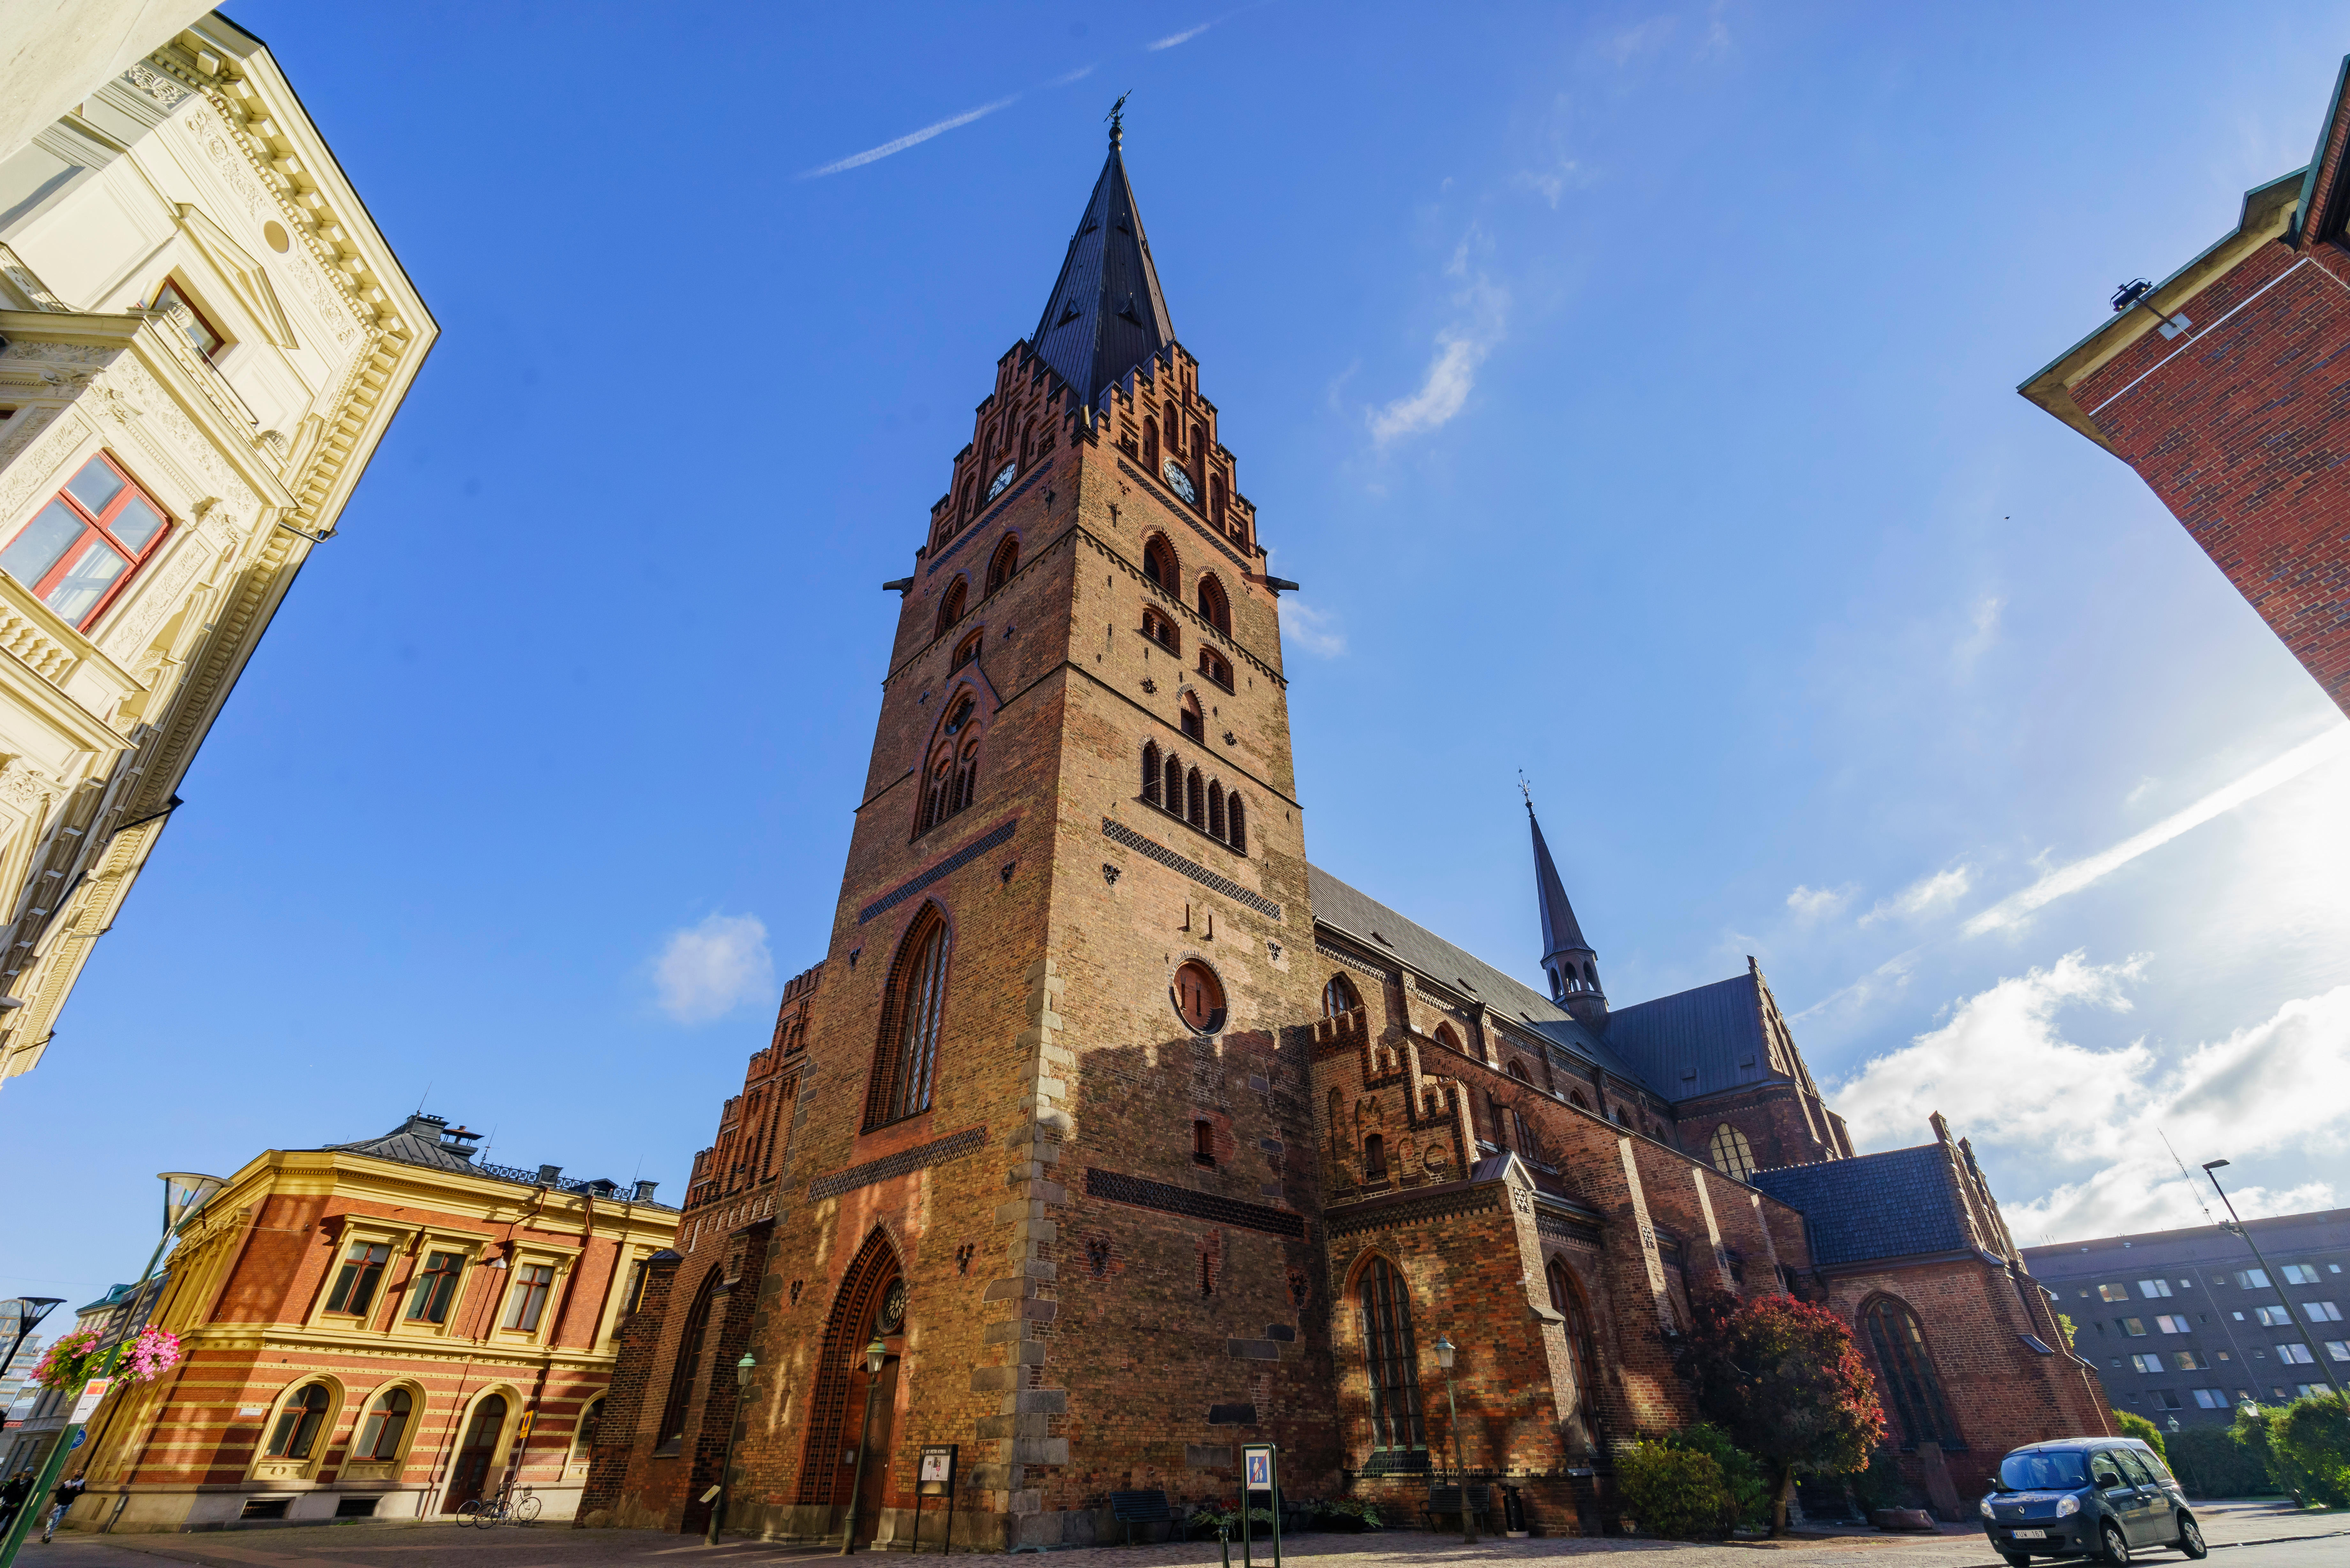 10 Best Things to Do in Malmo - What is Malmo Most Famous